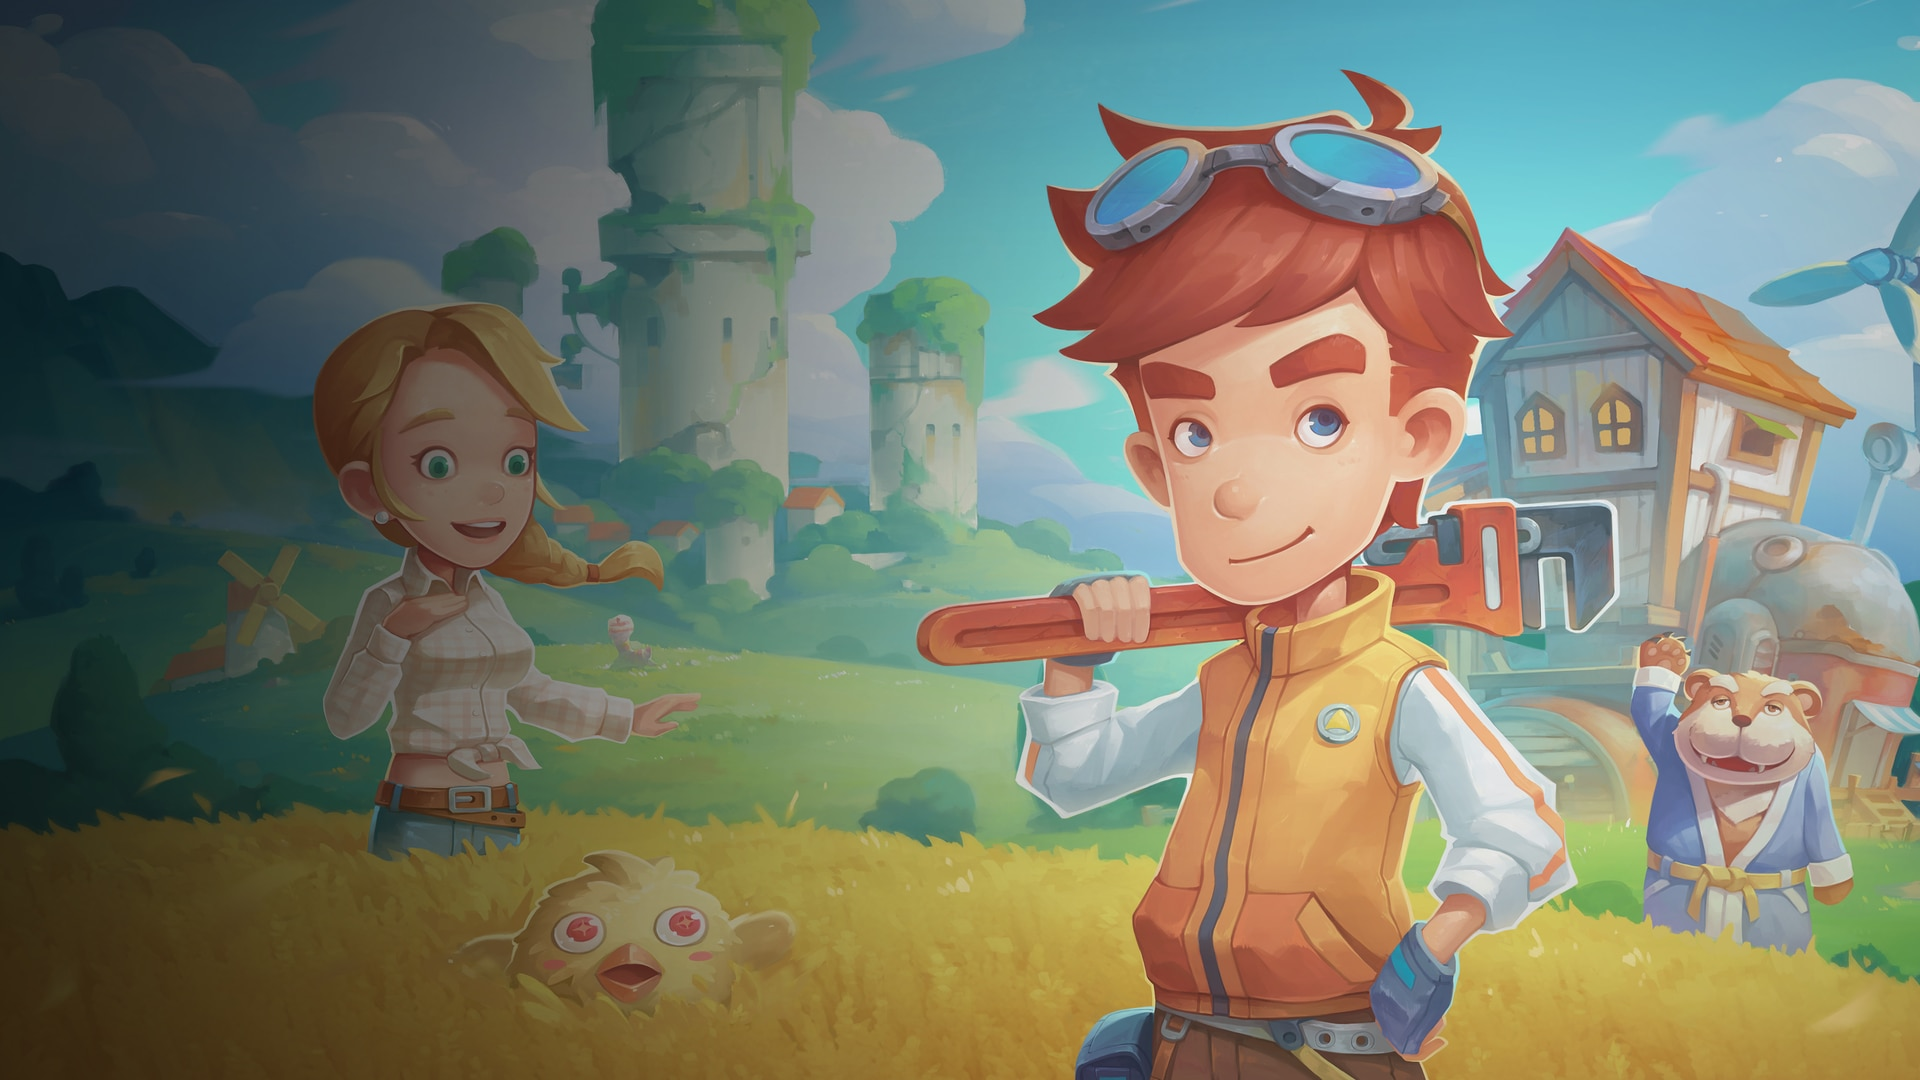 My Time at Portia (Simplified Chinese, English, Japanese, Traditional Chinese)